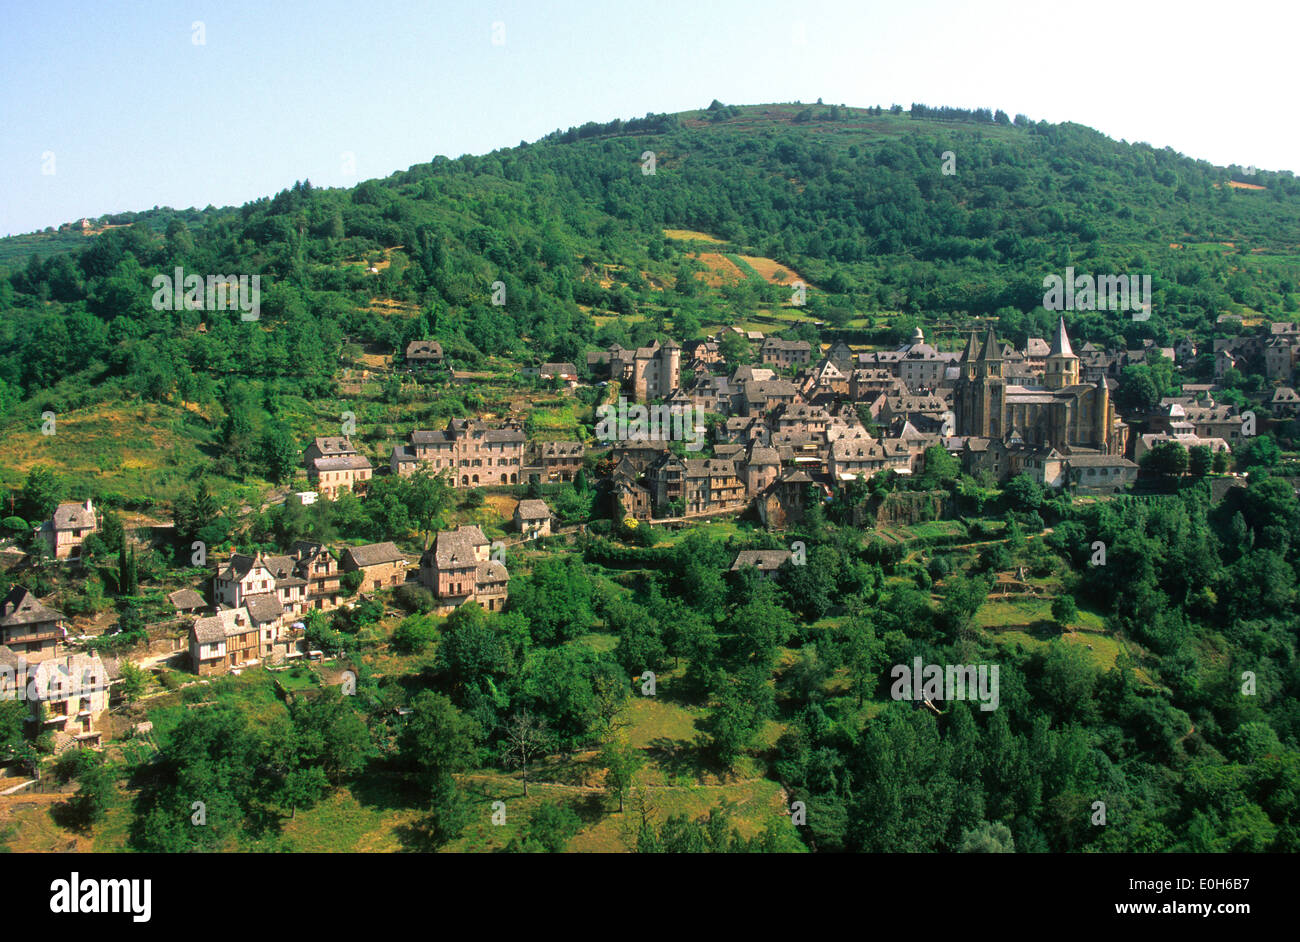 Conques village in Aveyron, France - Stock Image